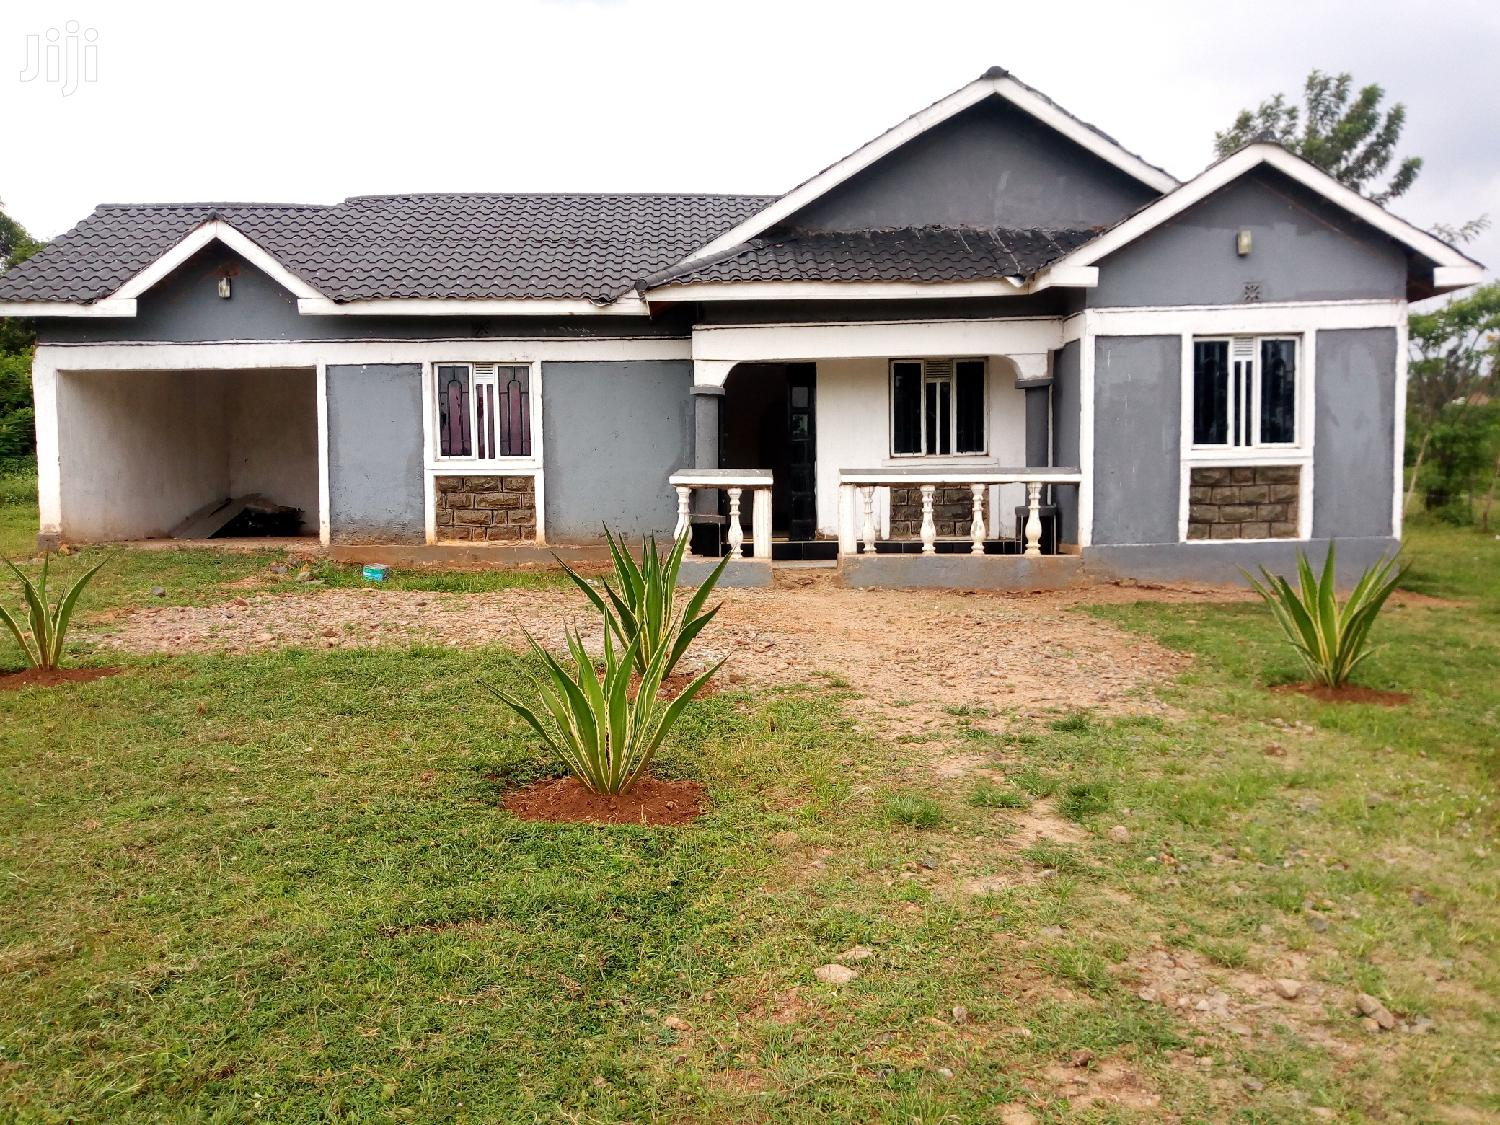 3 Bedrooms House in Mamboleo(Konya) for Sale | Houses & Apartments For Sale for sale in Kisumu East, Kisumu, Kenya